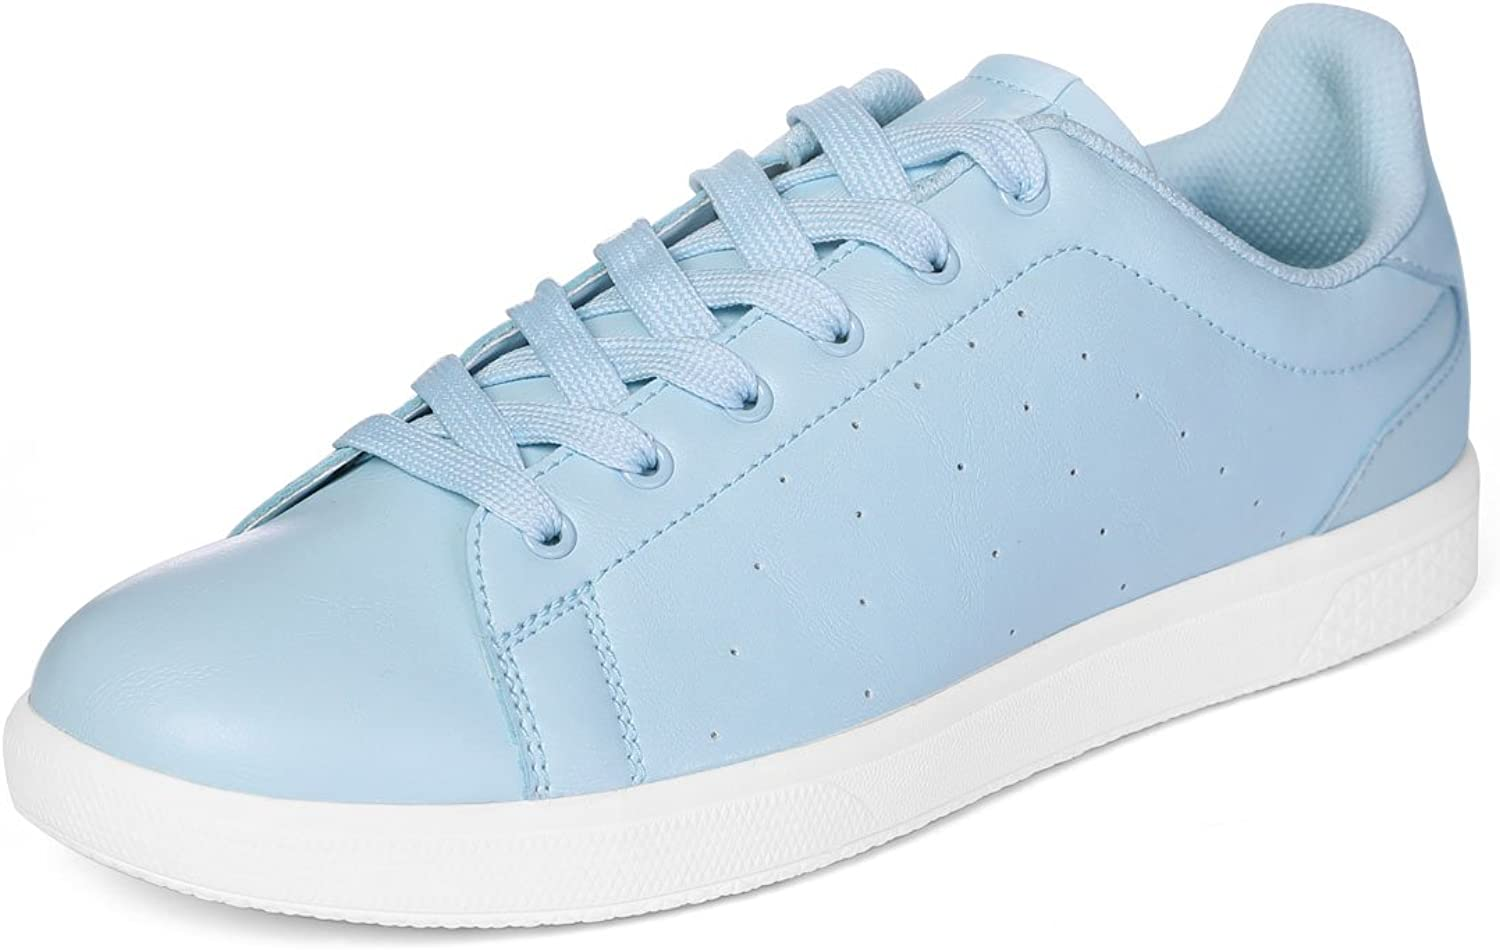 PYPE Women's Lace Up Sneakers